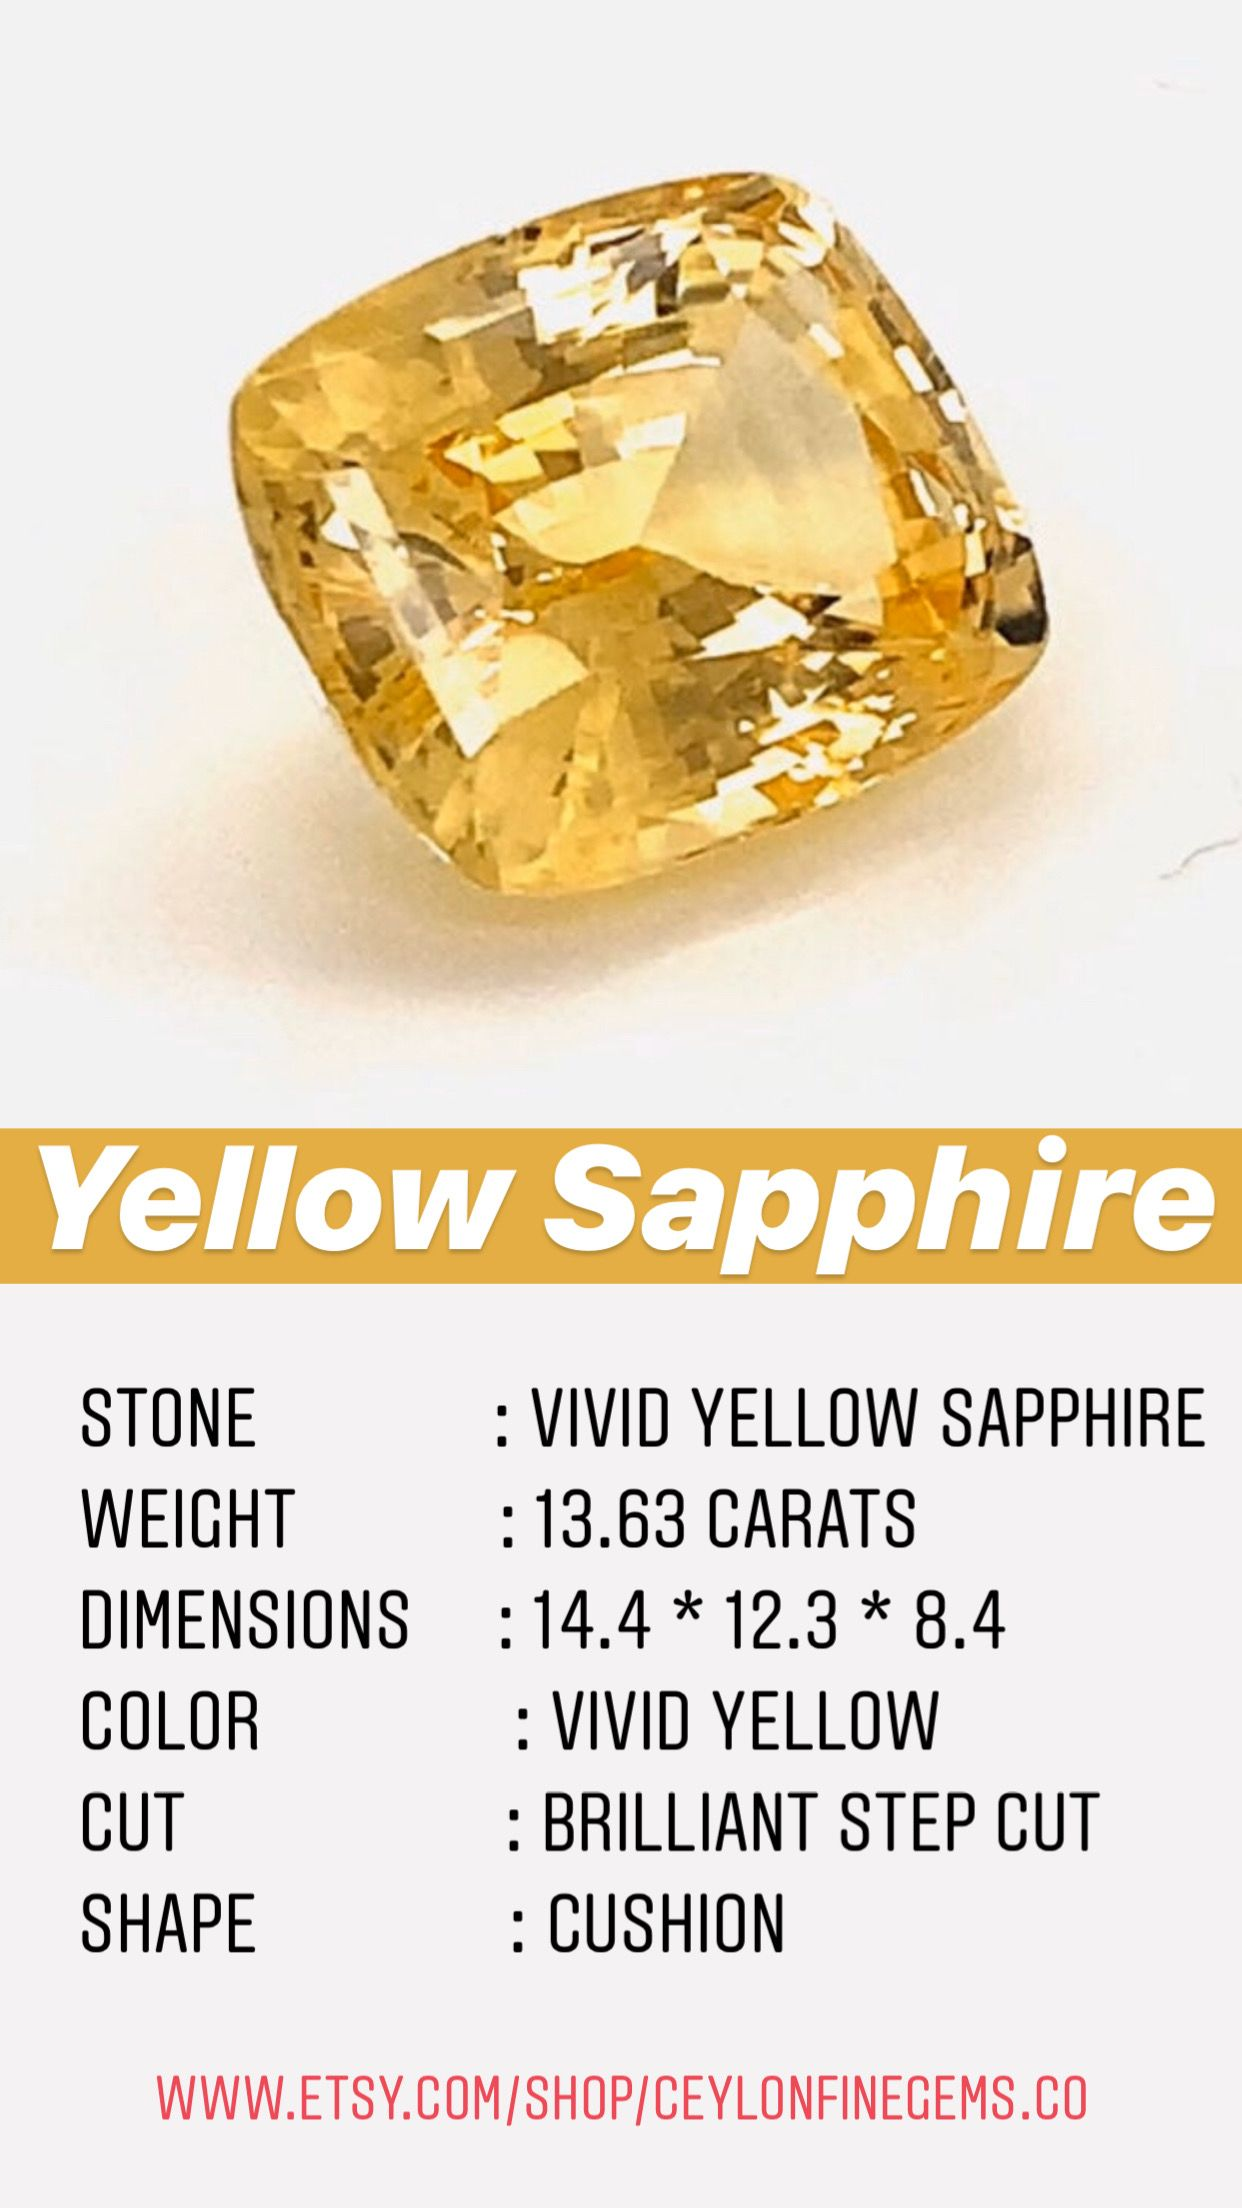 Yellow Sapphire 13 6 Cts Unheated Yellow Sapphire For Vedic Ring Yellow Sapphire Engagement Ring Yellow Sapphire For Astrology Ring Making In 2020 Yellow Sapphire Ring Engagement Engagement Rings Sapphire Yellow Sapphire Rings